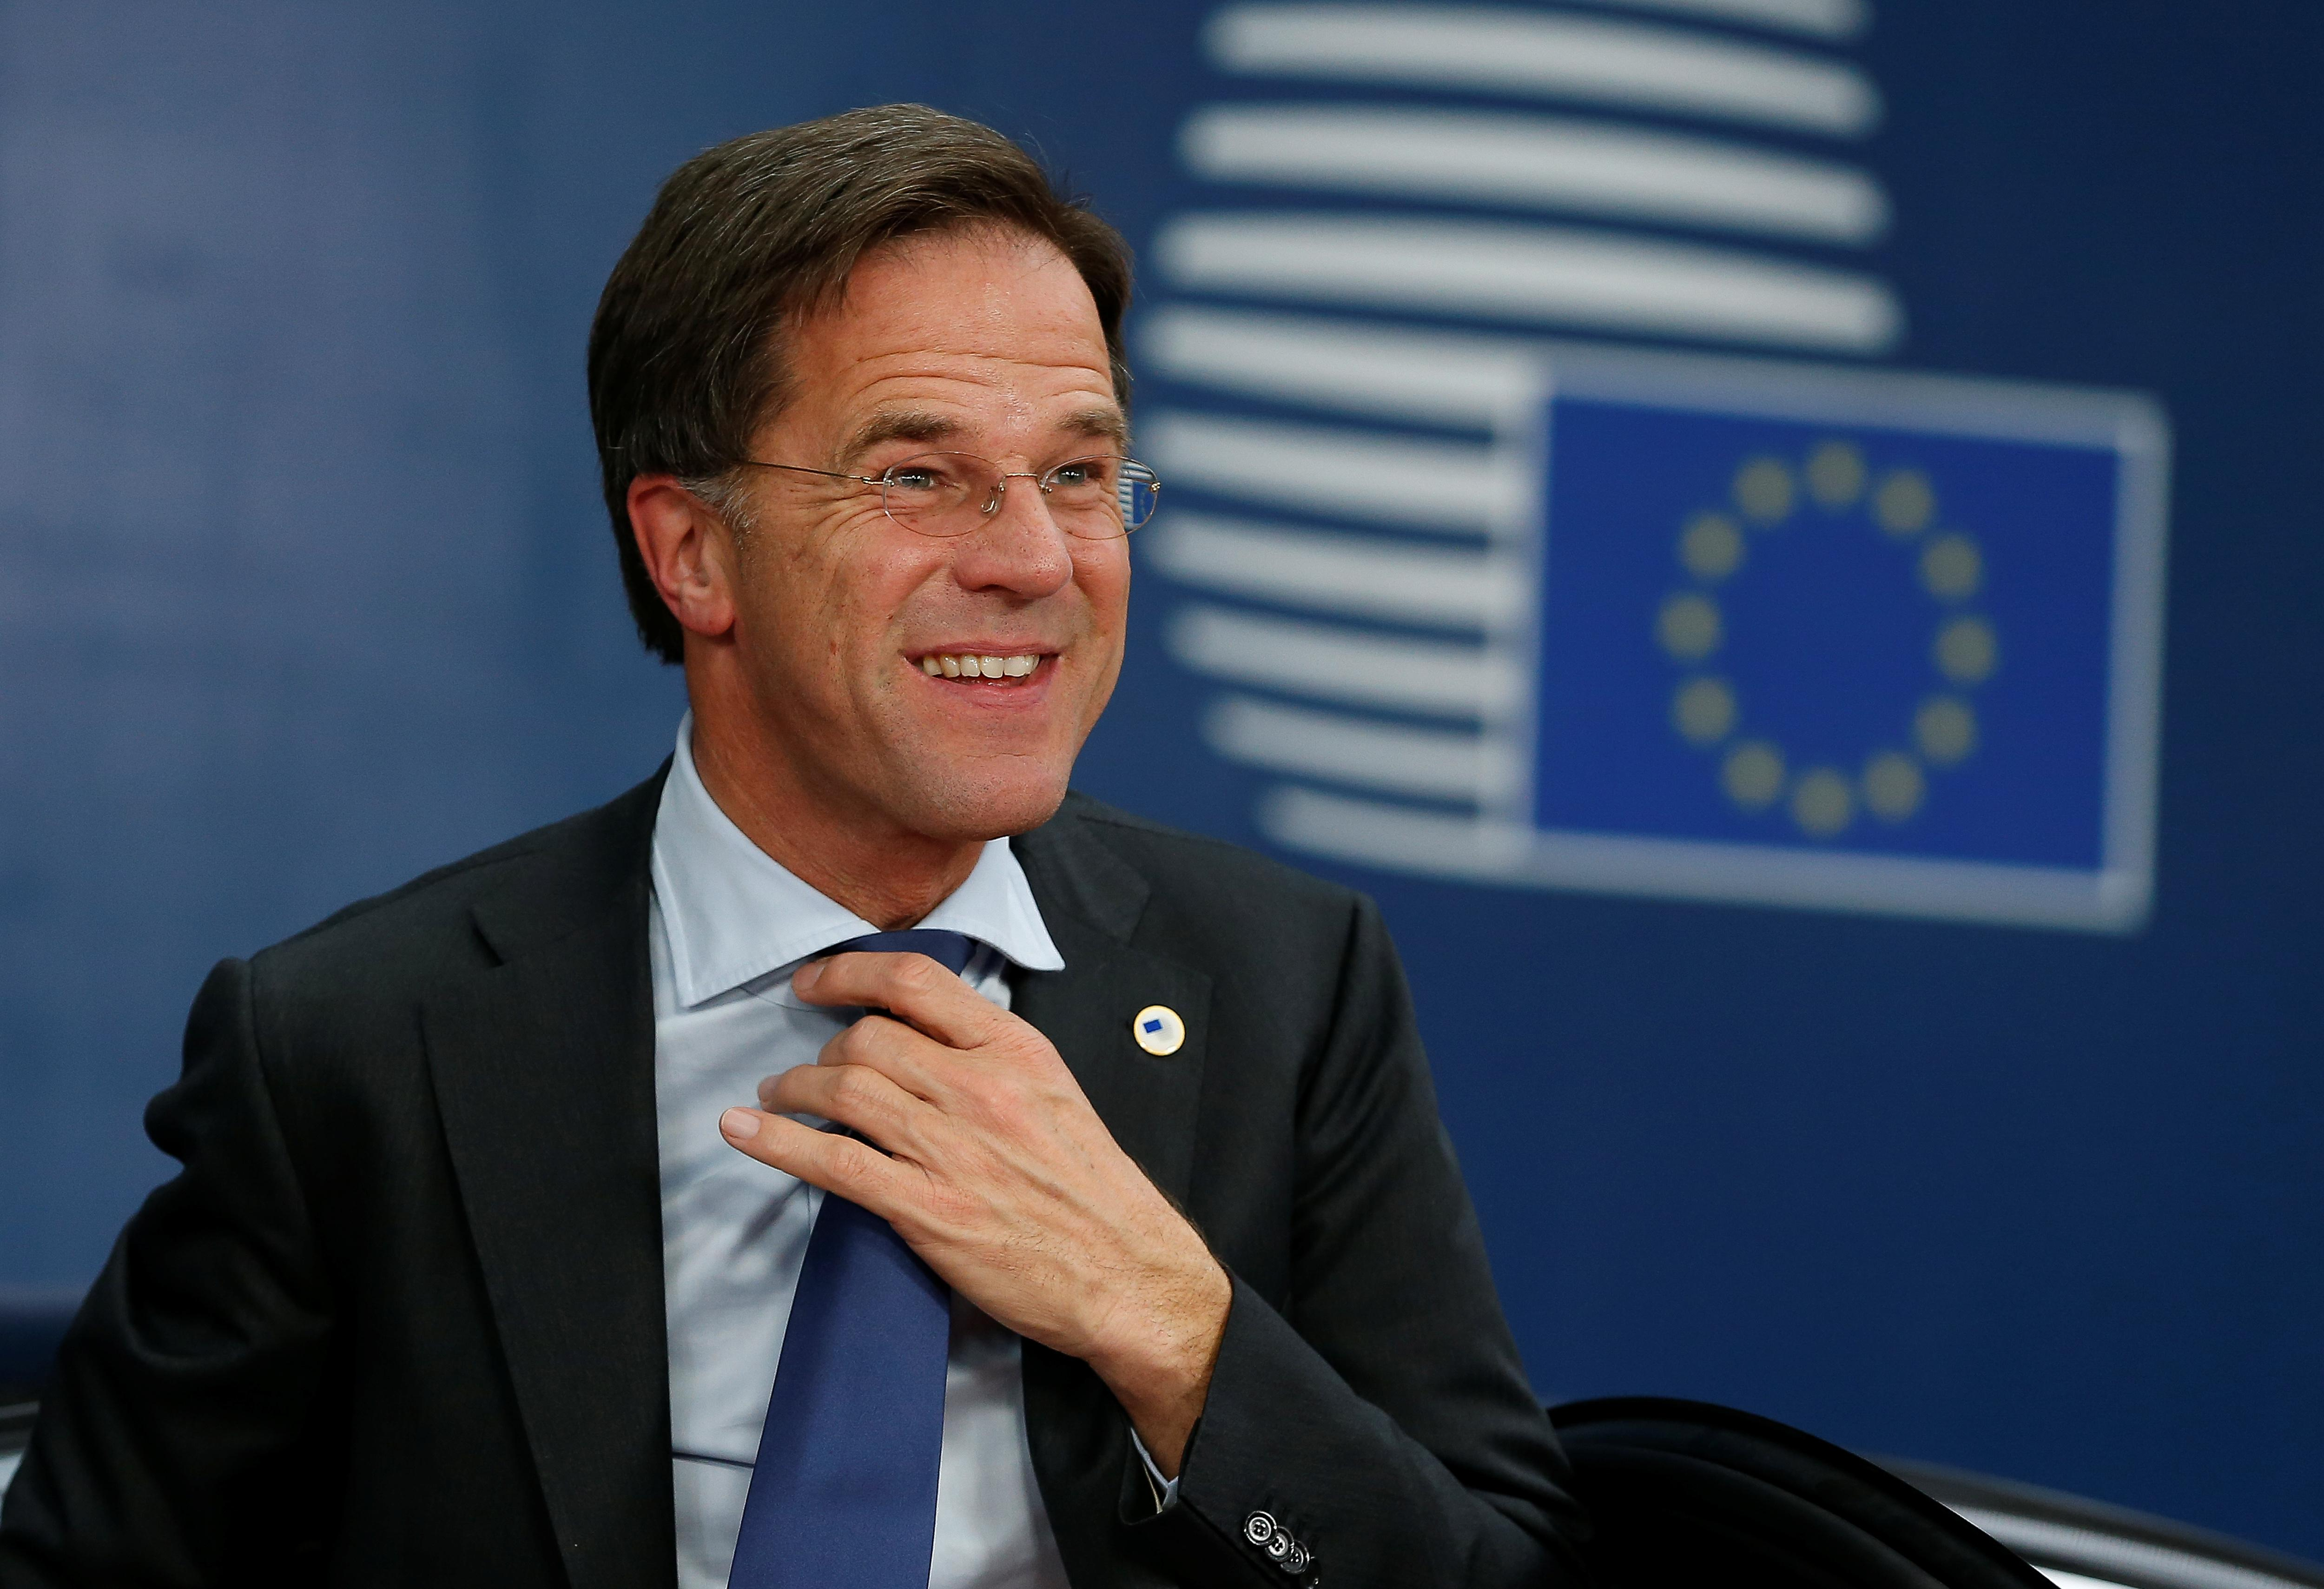 Dutch PM Rutte: spoke with UK's Johnson, wished him success in...